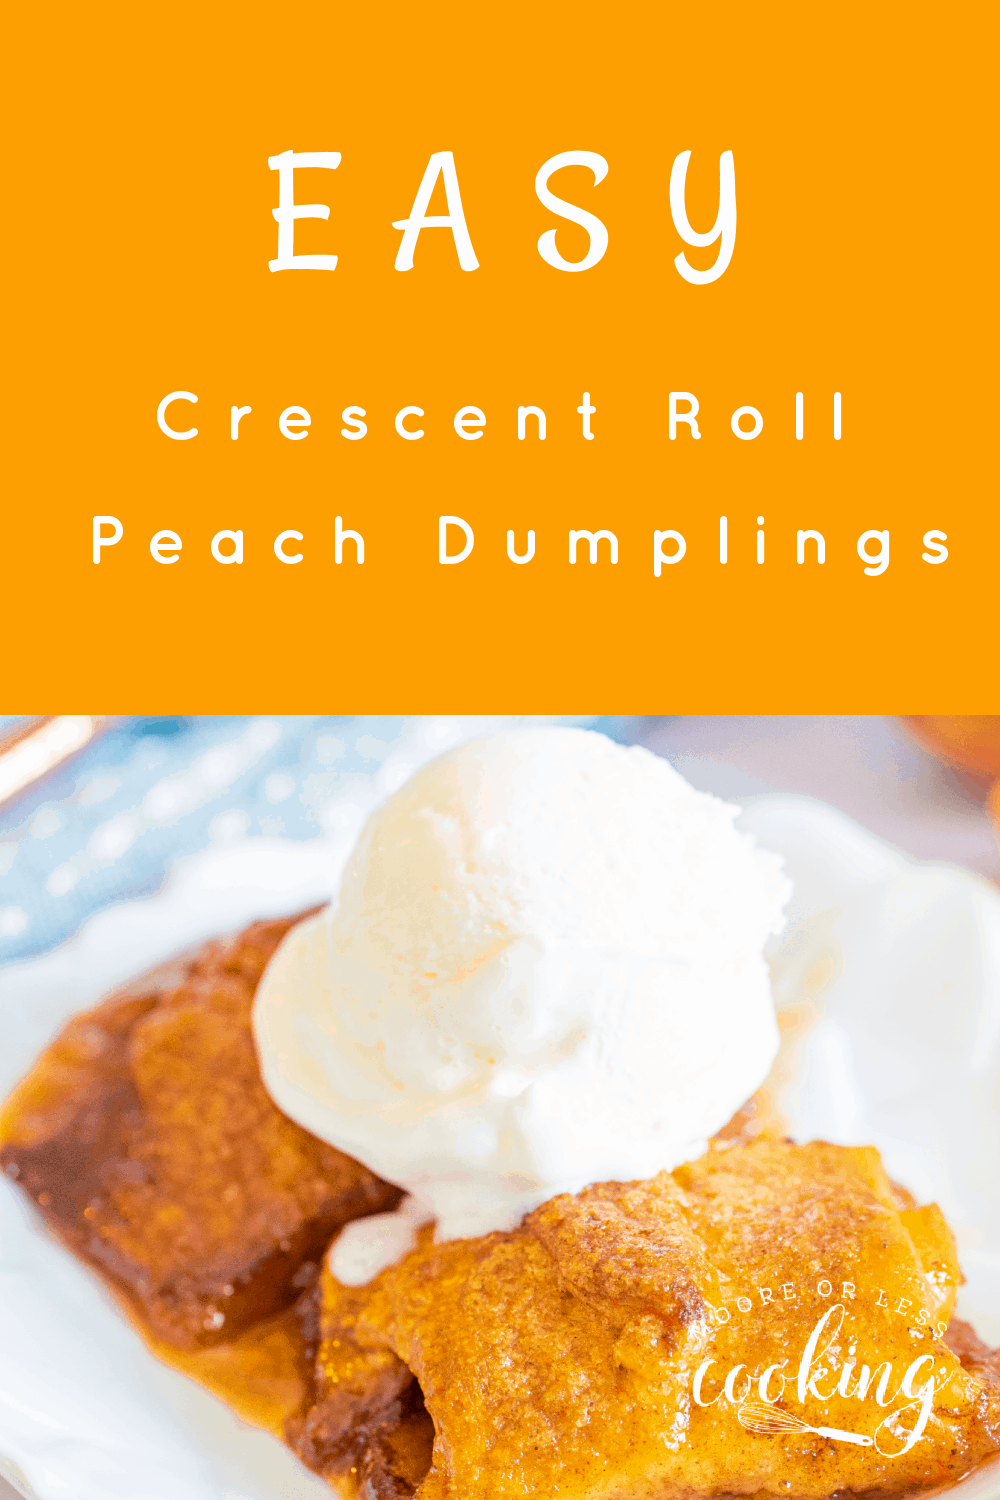 This Easy Crescent Roll Peach Dumplings recipe is one of the best desserts ever. Fresh peaches combined with brown sugar and cinnamon are an incredible combo. These peach pastries are a game-changer – make this easy dessert in 45 minutes! via @Mooreorlesscook